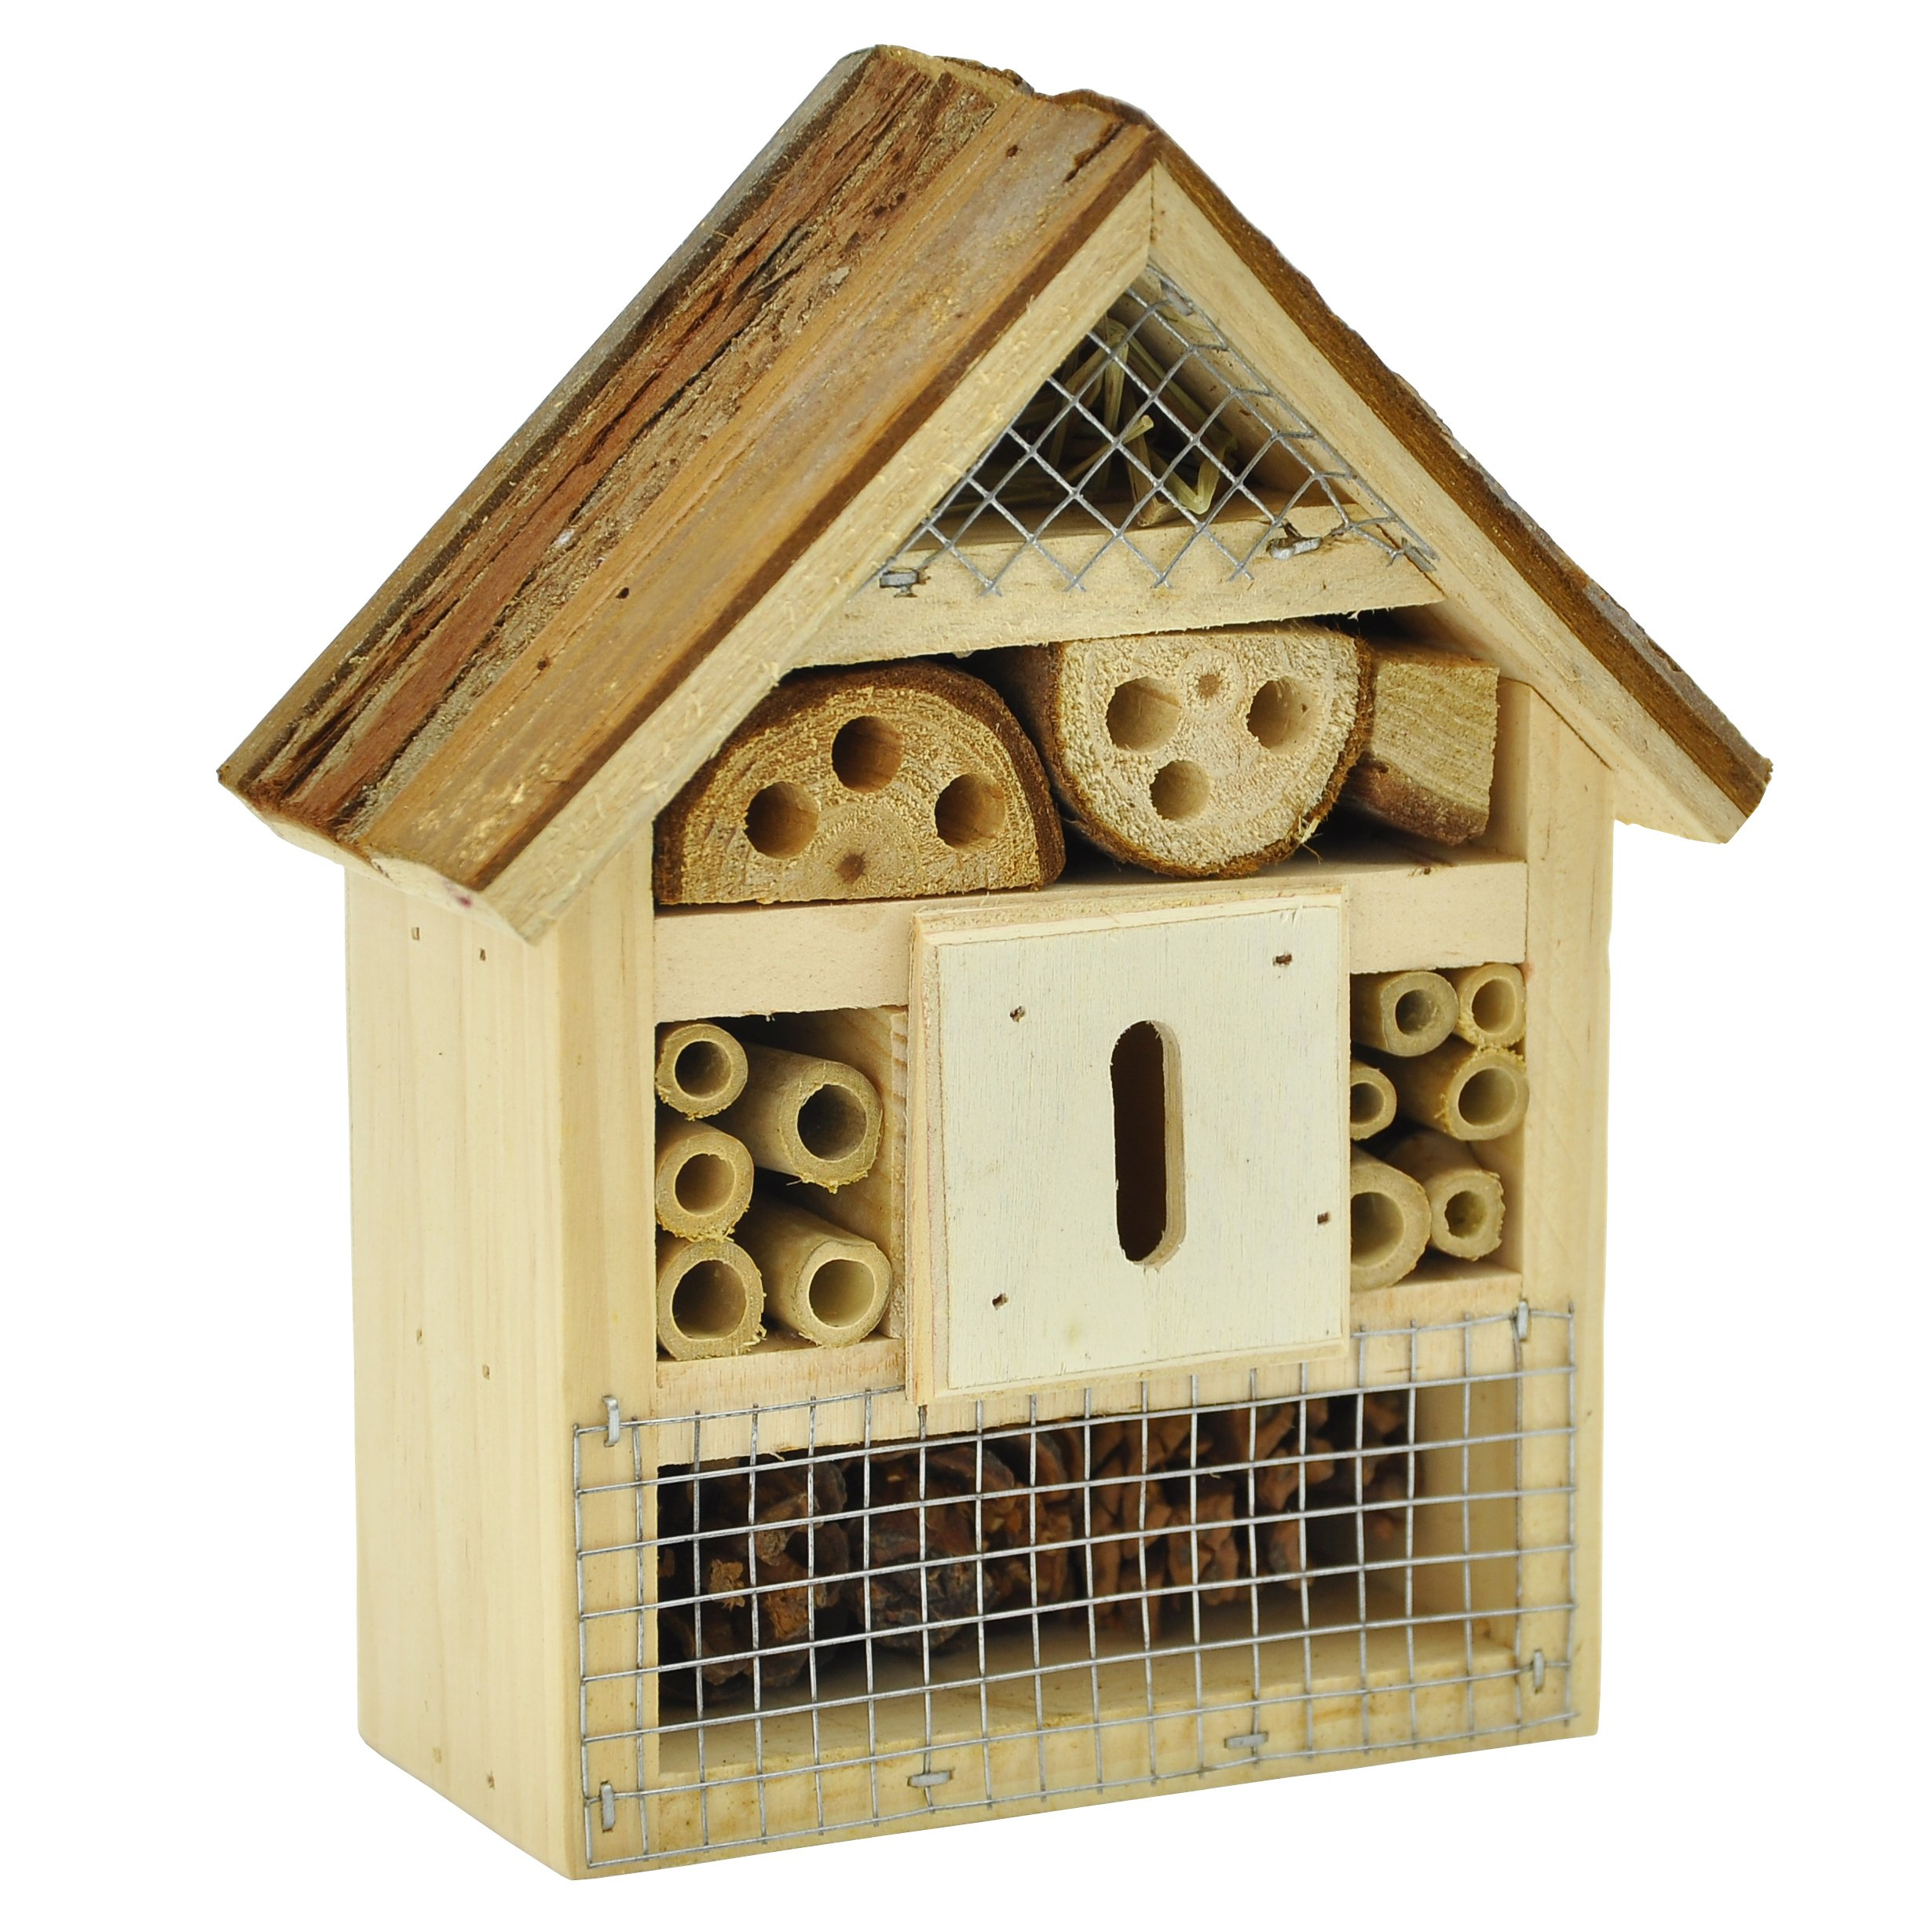 Gardirect Wooden Insect Hotel & Bee House, Small Size, 6'' x 2-3/4'' x 7''